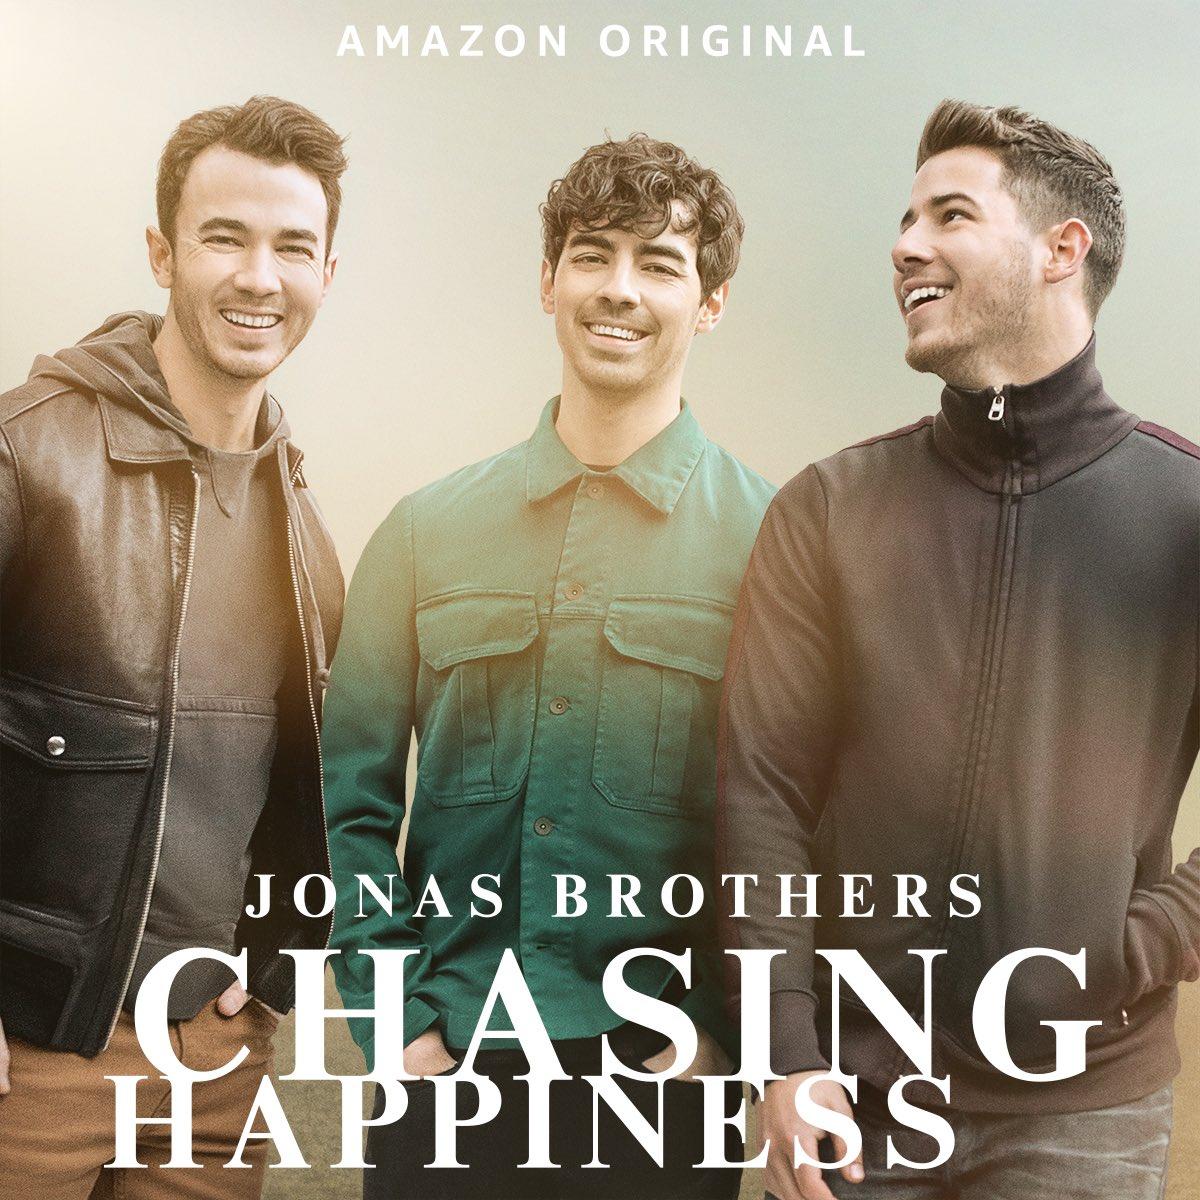 Jonas Brothers documentary coming to Amazon Prime Video in June 2019